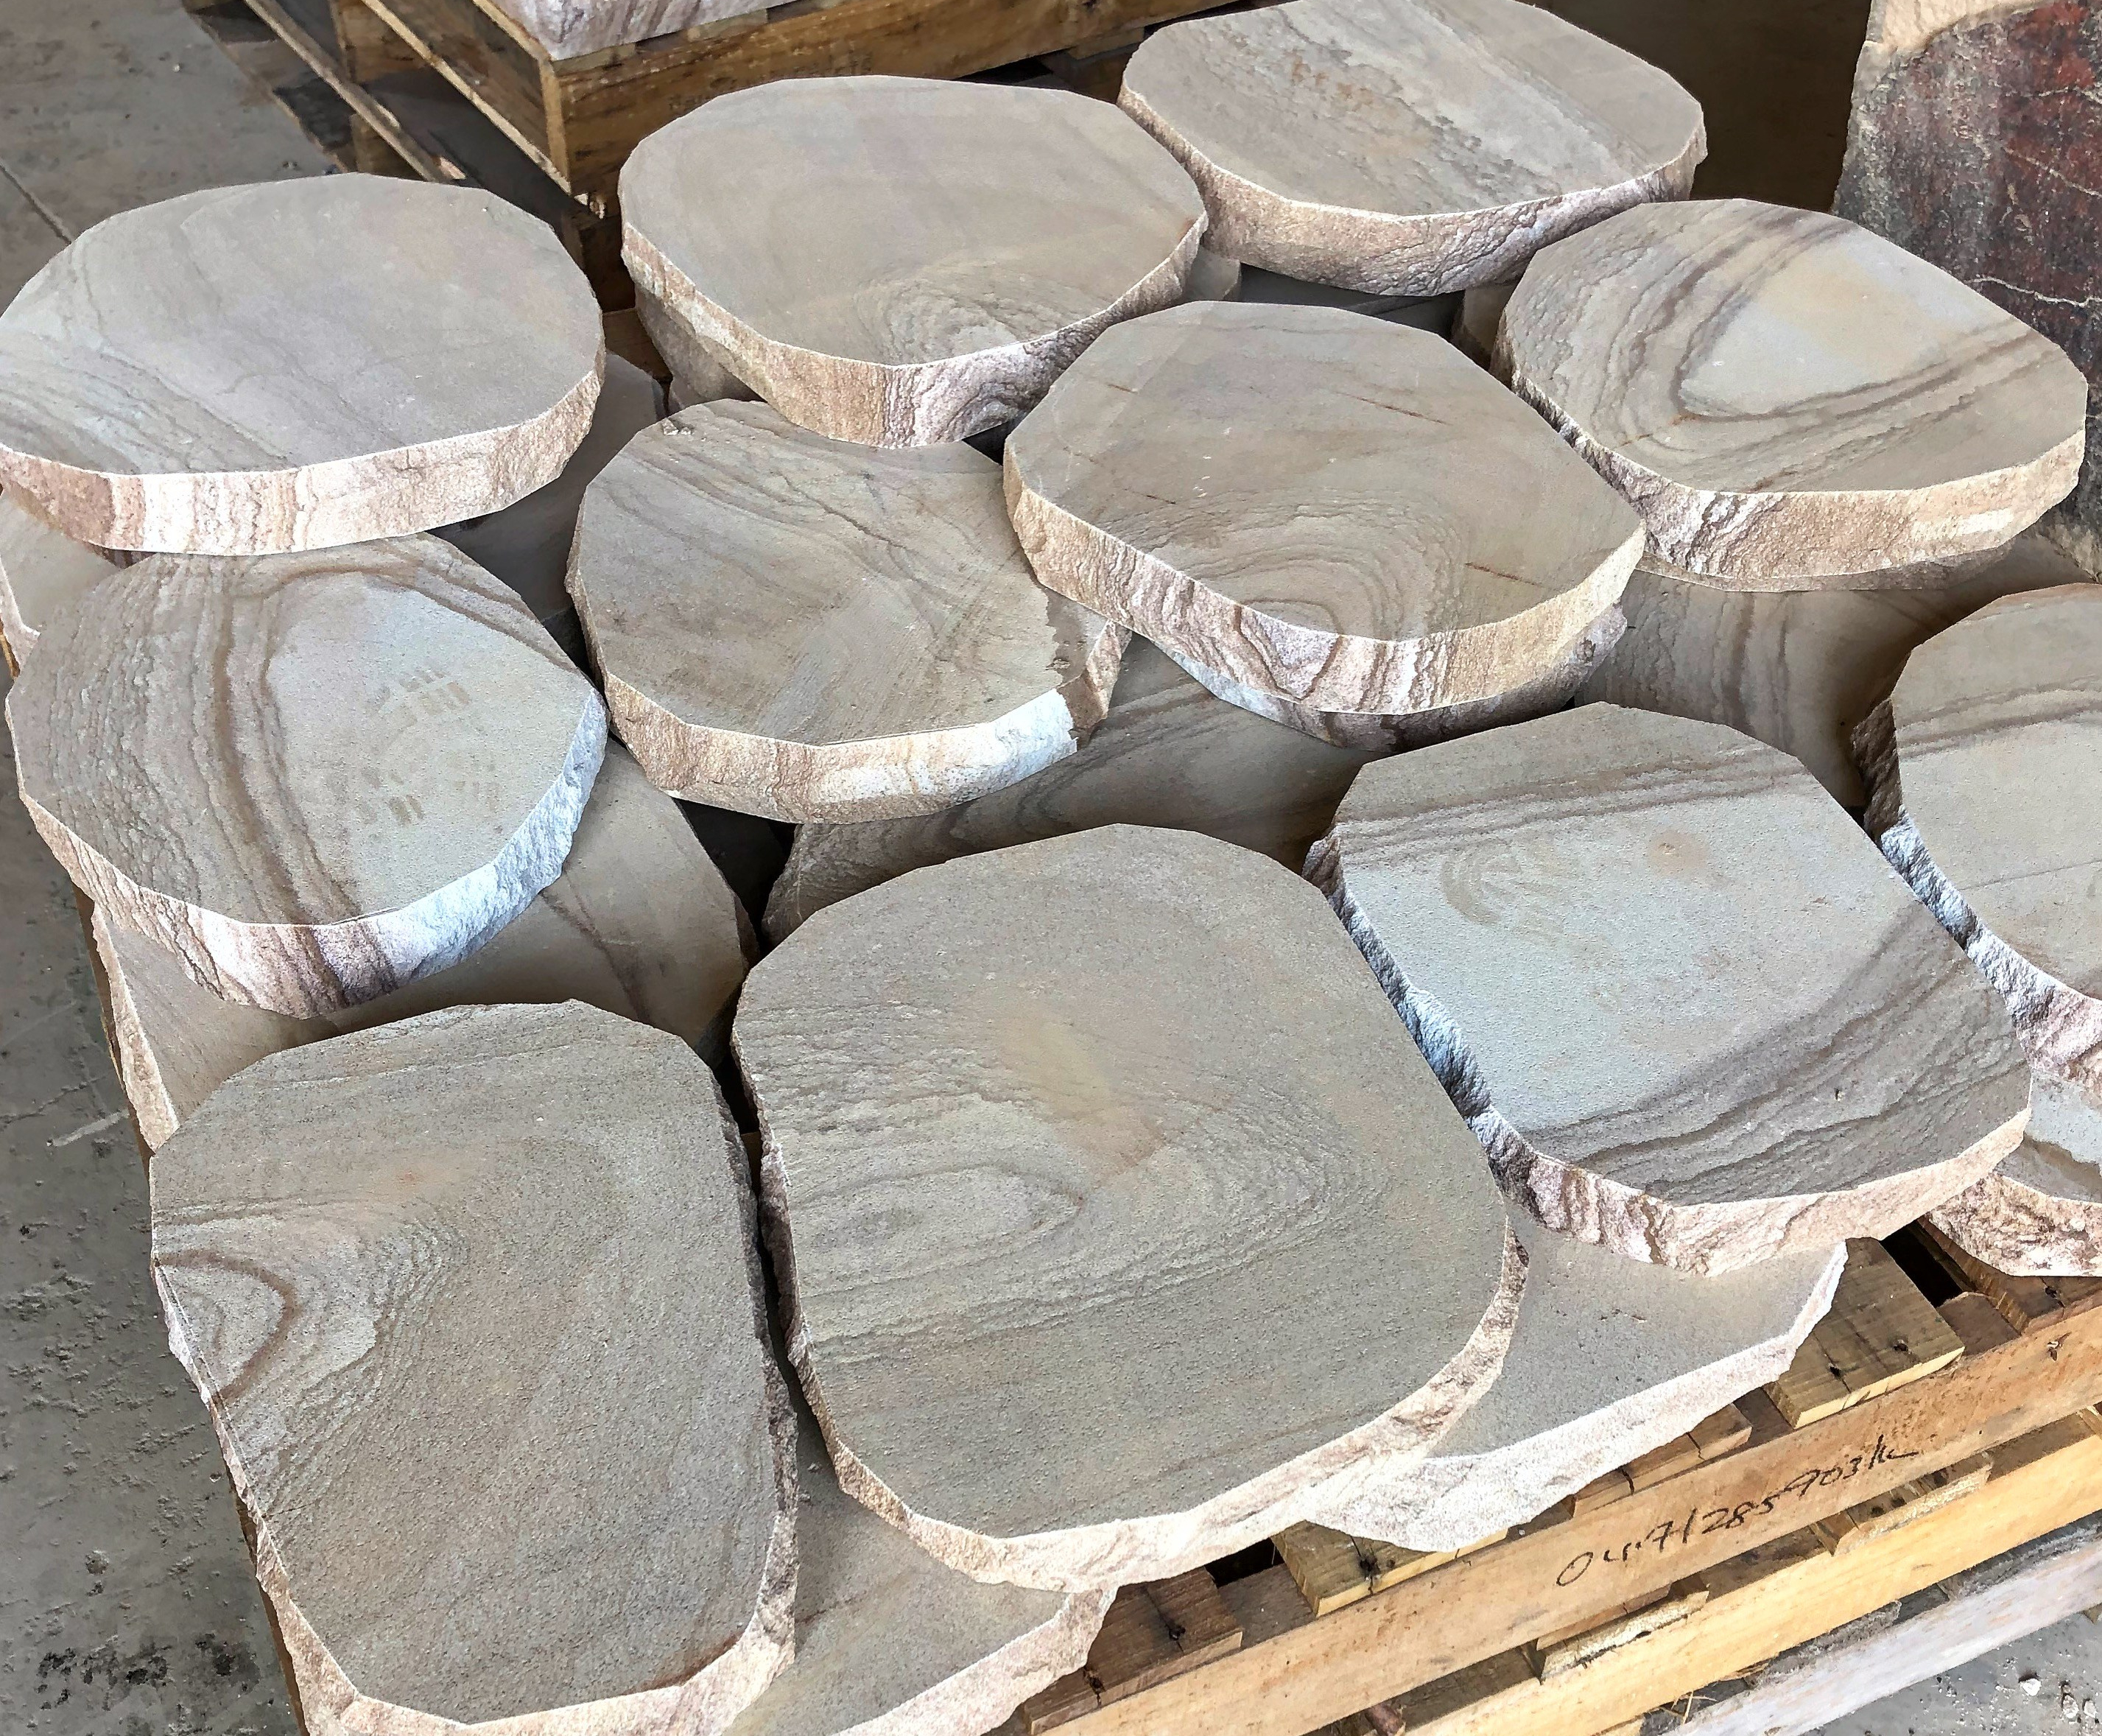 Stone steppers seen in a pallet and ready to be shipped to designers, builders and landscapers